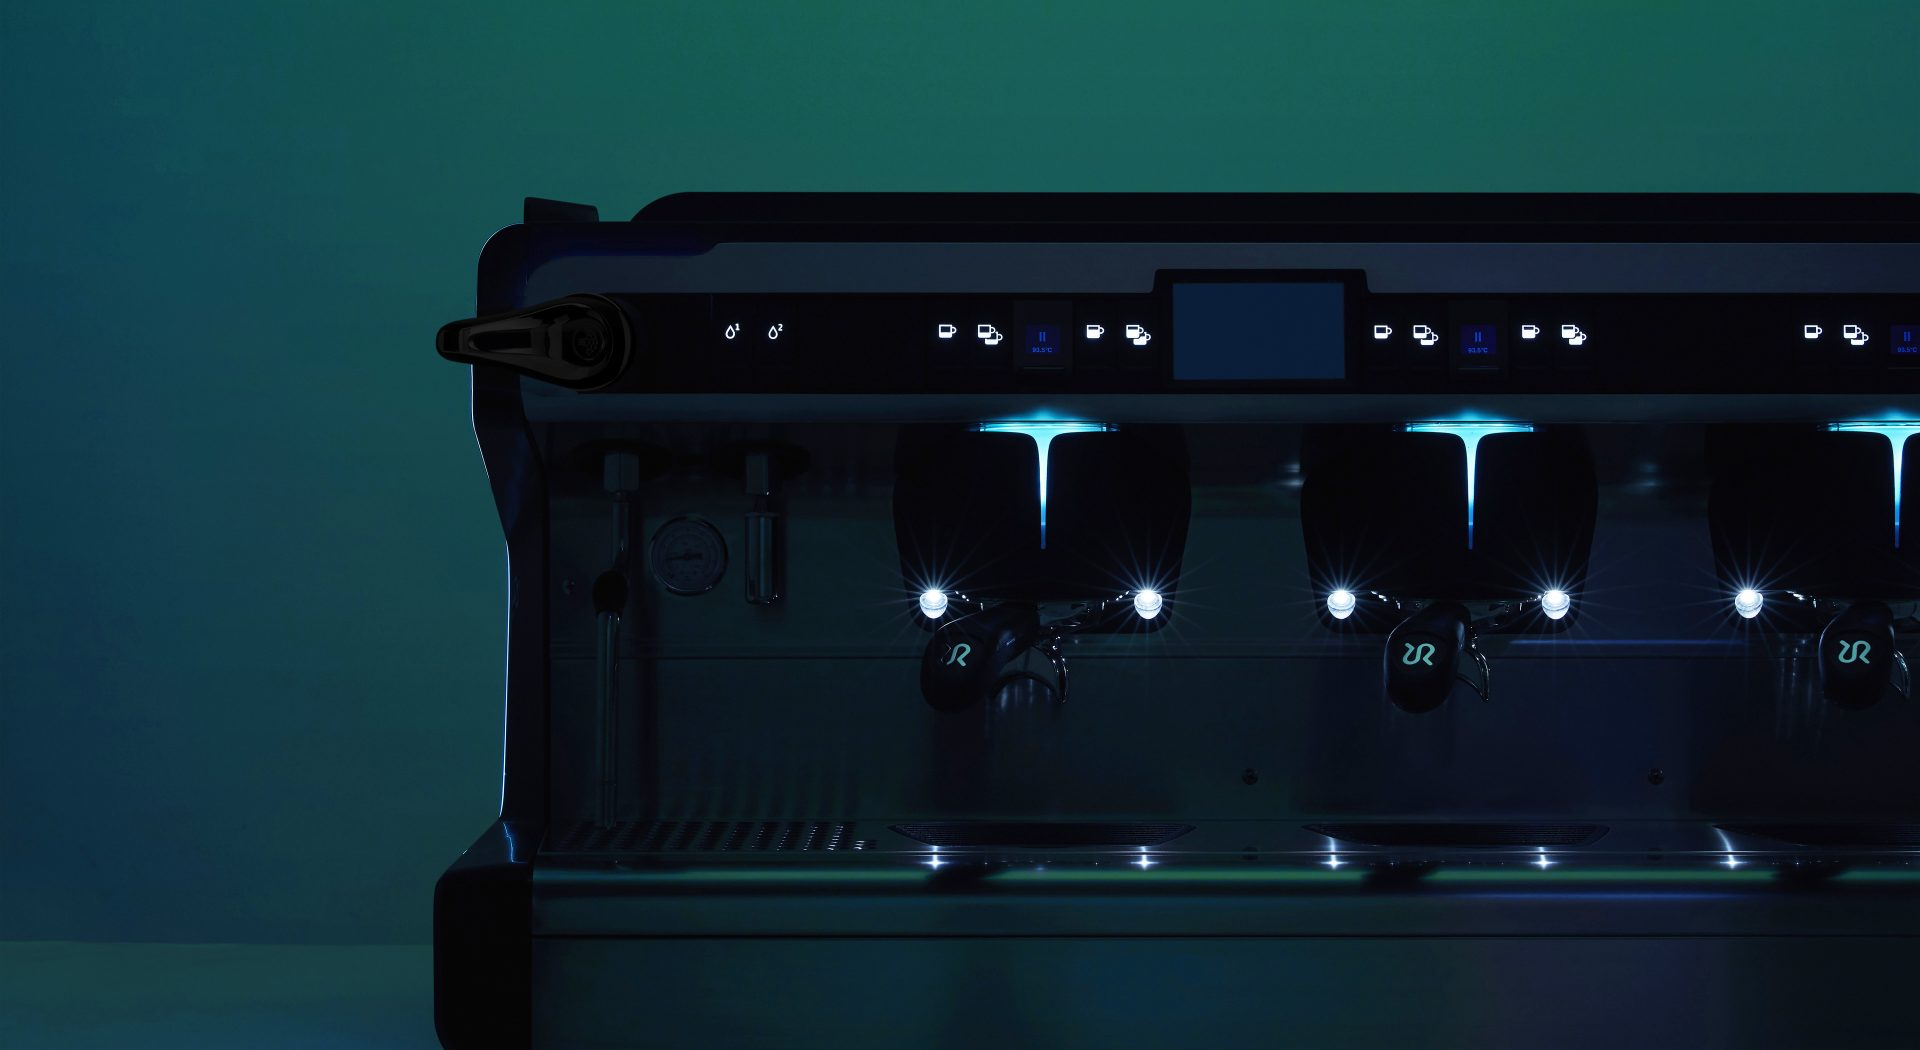 The Rancilio Group's Asian tour will move from Korea to Taiwan in the next weeks.